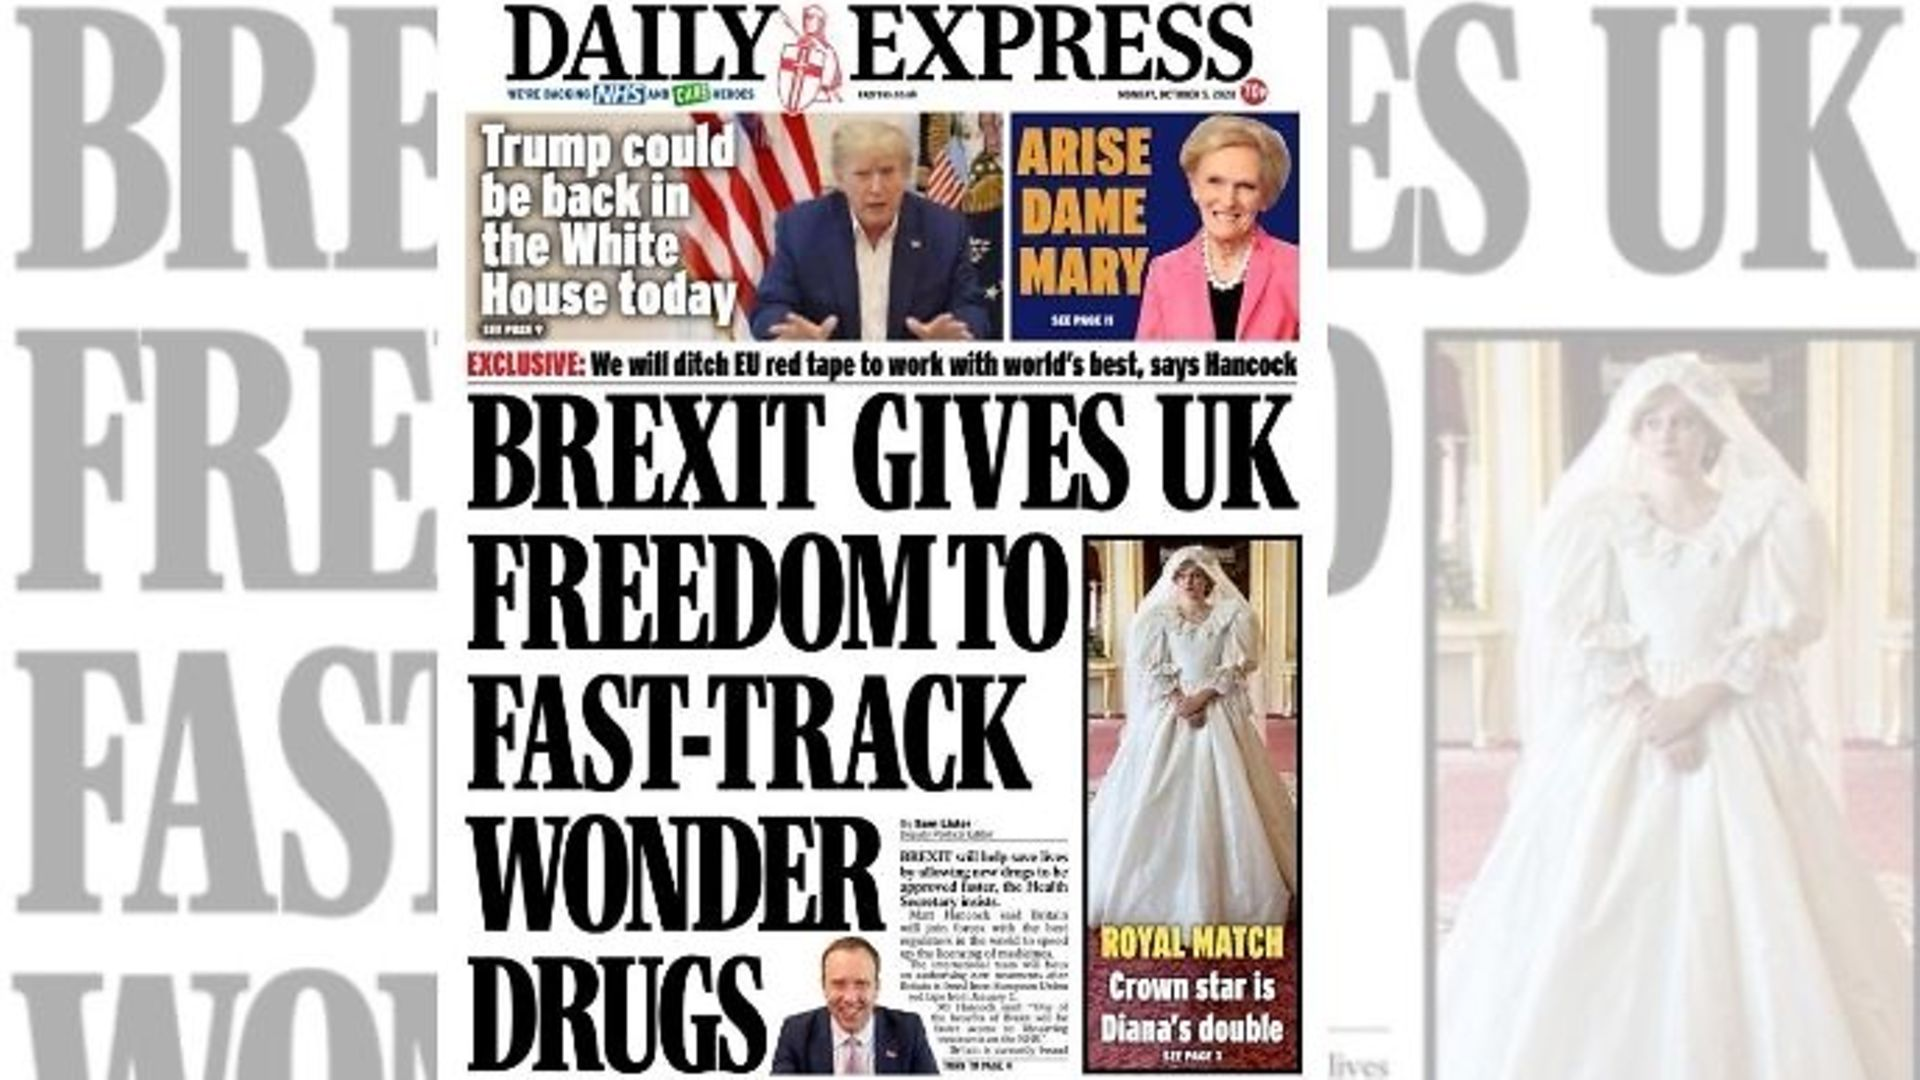 """Daily Express front claims Brexit could help """"save lives"""" - Credit: Twitter"""